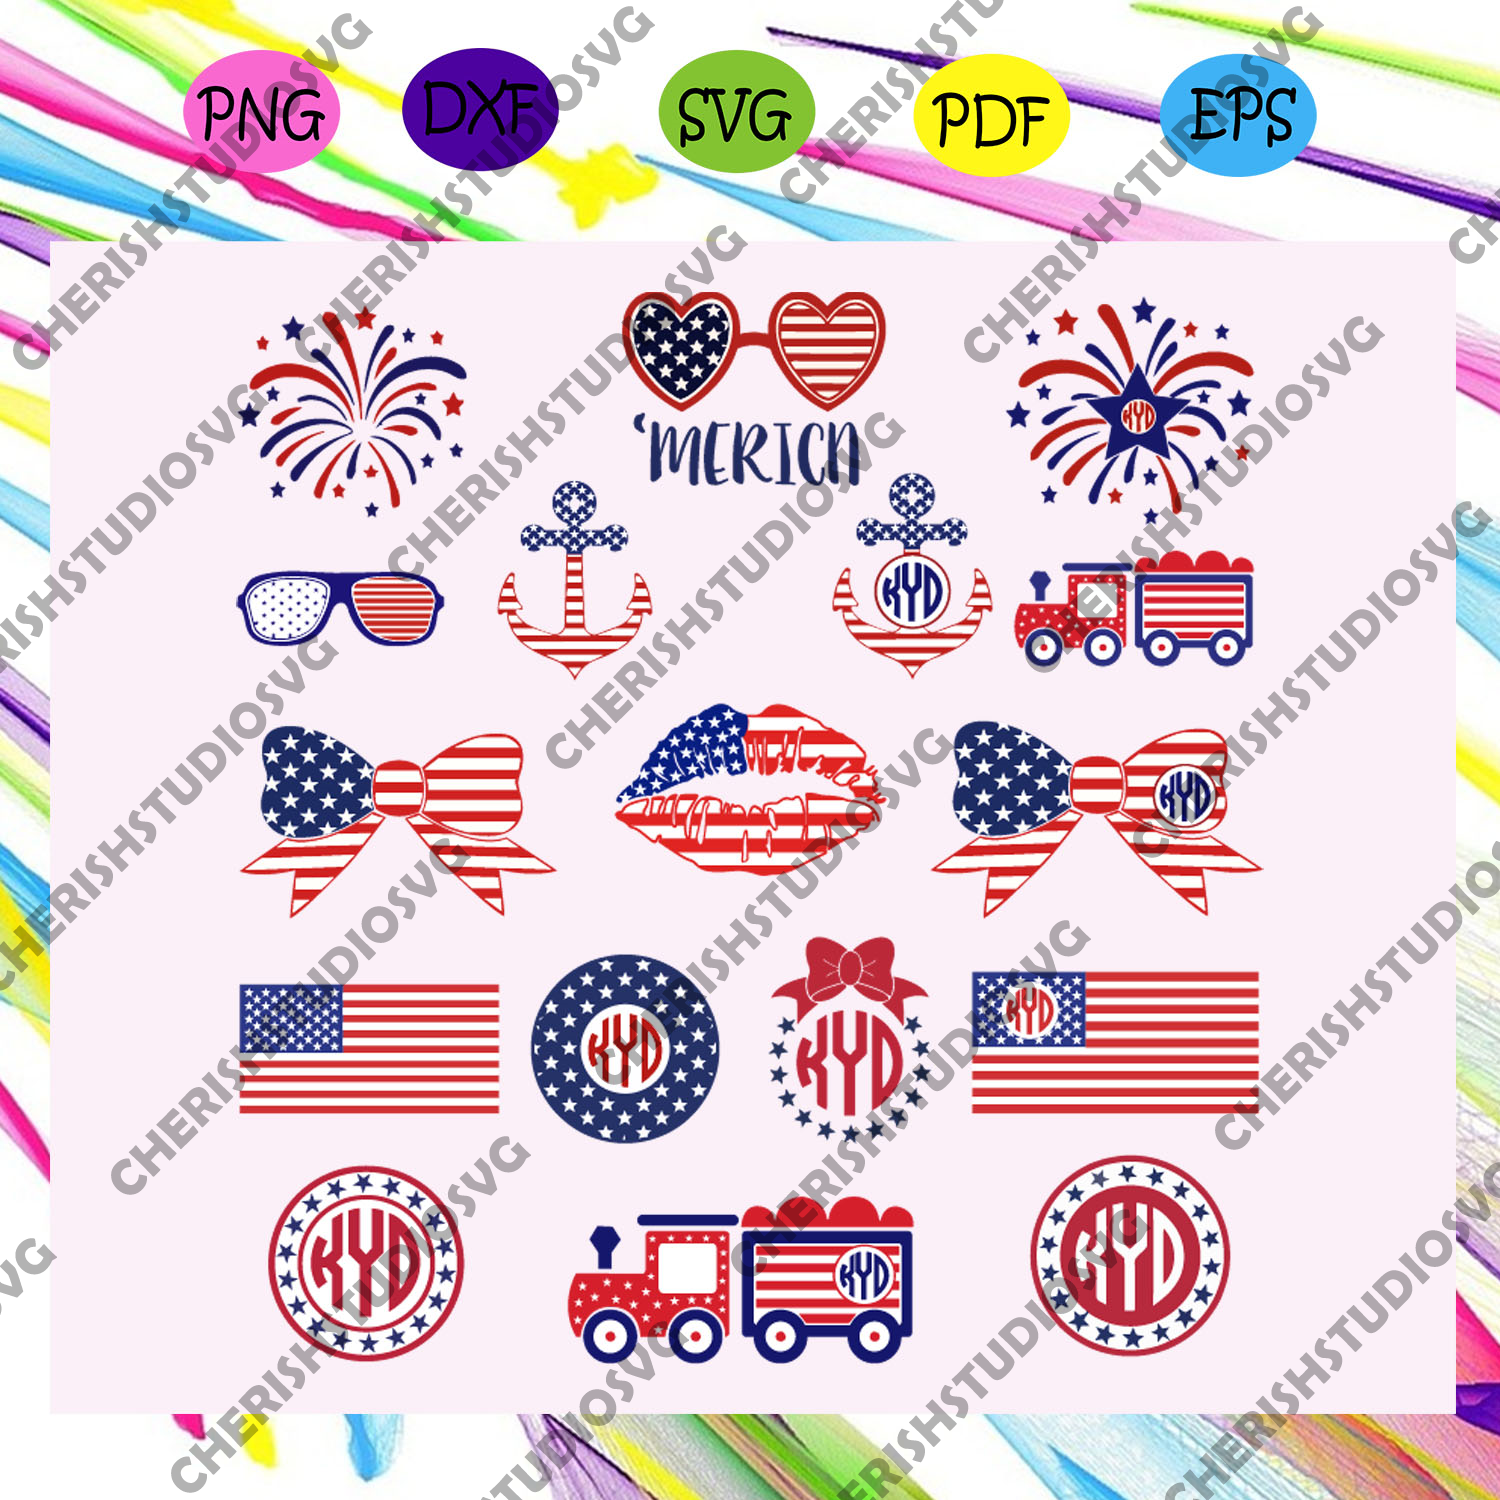 Independence day bundle svg, American Flag Svg, Fourth Of July Svg, America Svg, Patriotic American Svg, Independence Day Svg, Memorial Day, Files For Silhouette, Files For Cricut, SVG, DXF, EPS, PNG, Instant Download